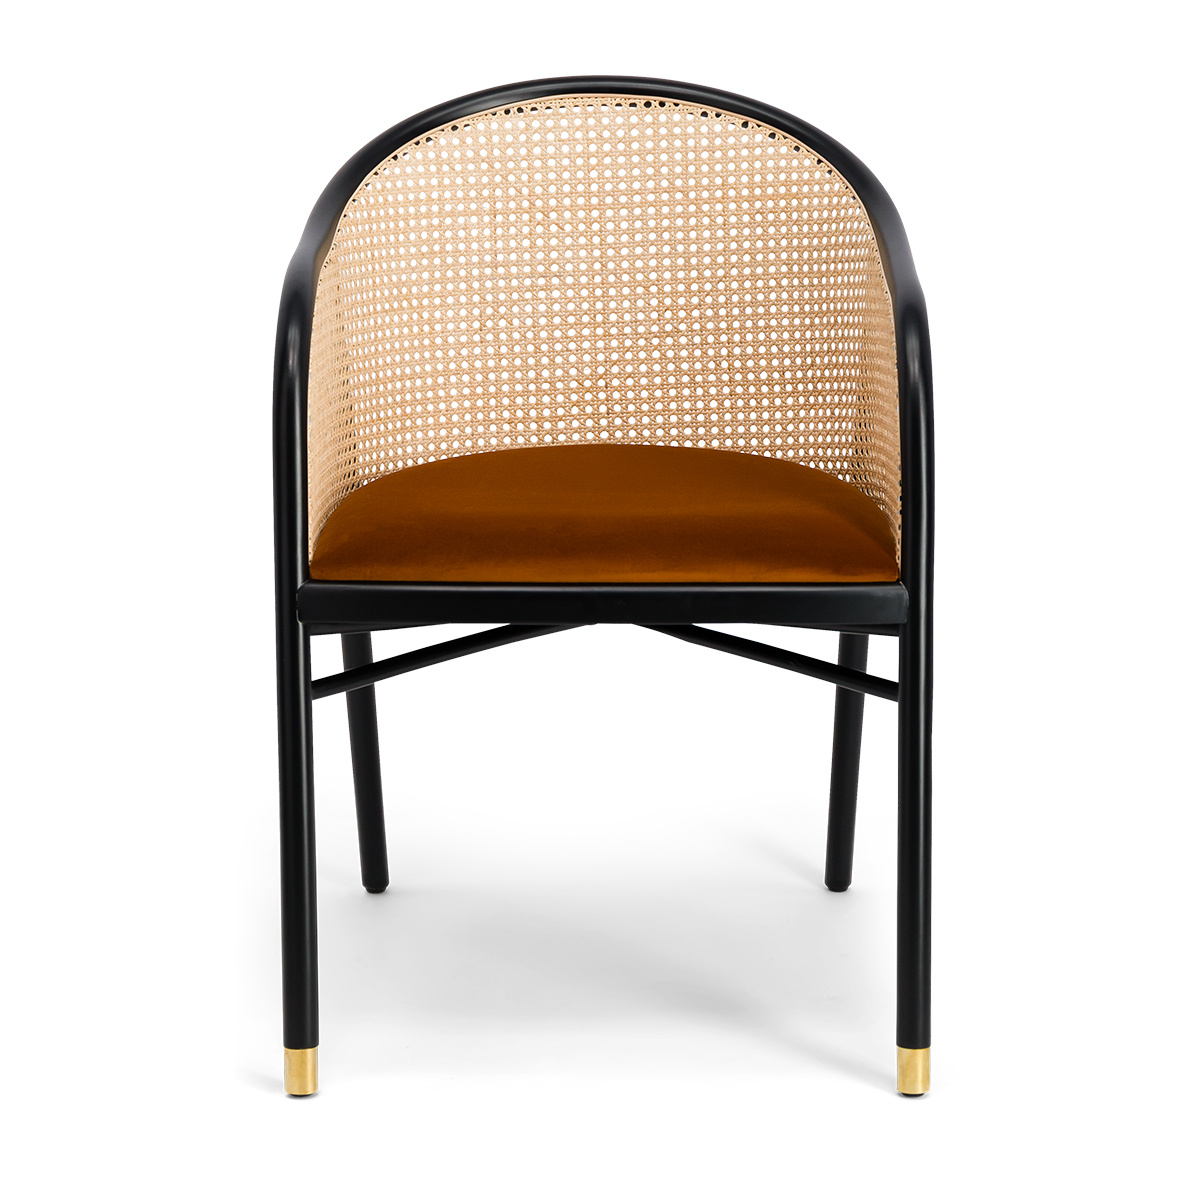 Cavallo Armchair, Brick Red Velvet with Black Lacquered Frame